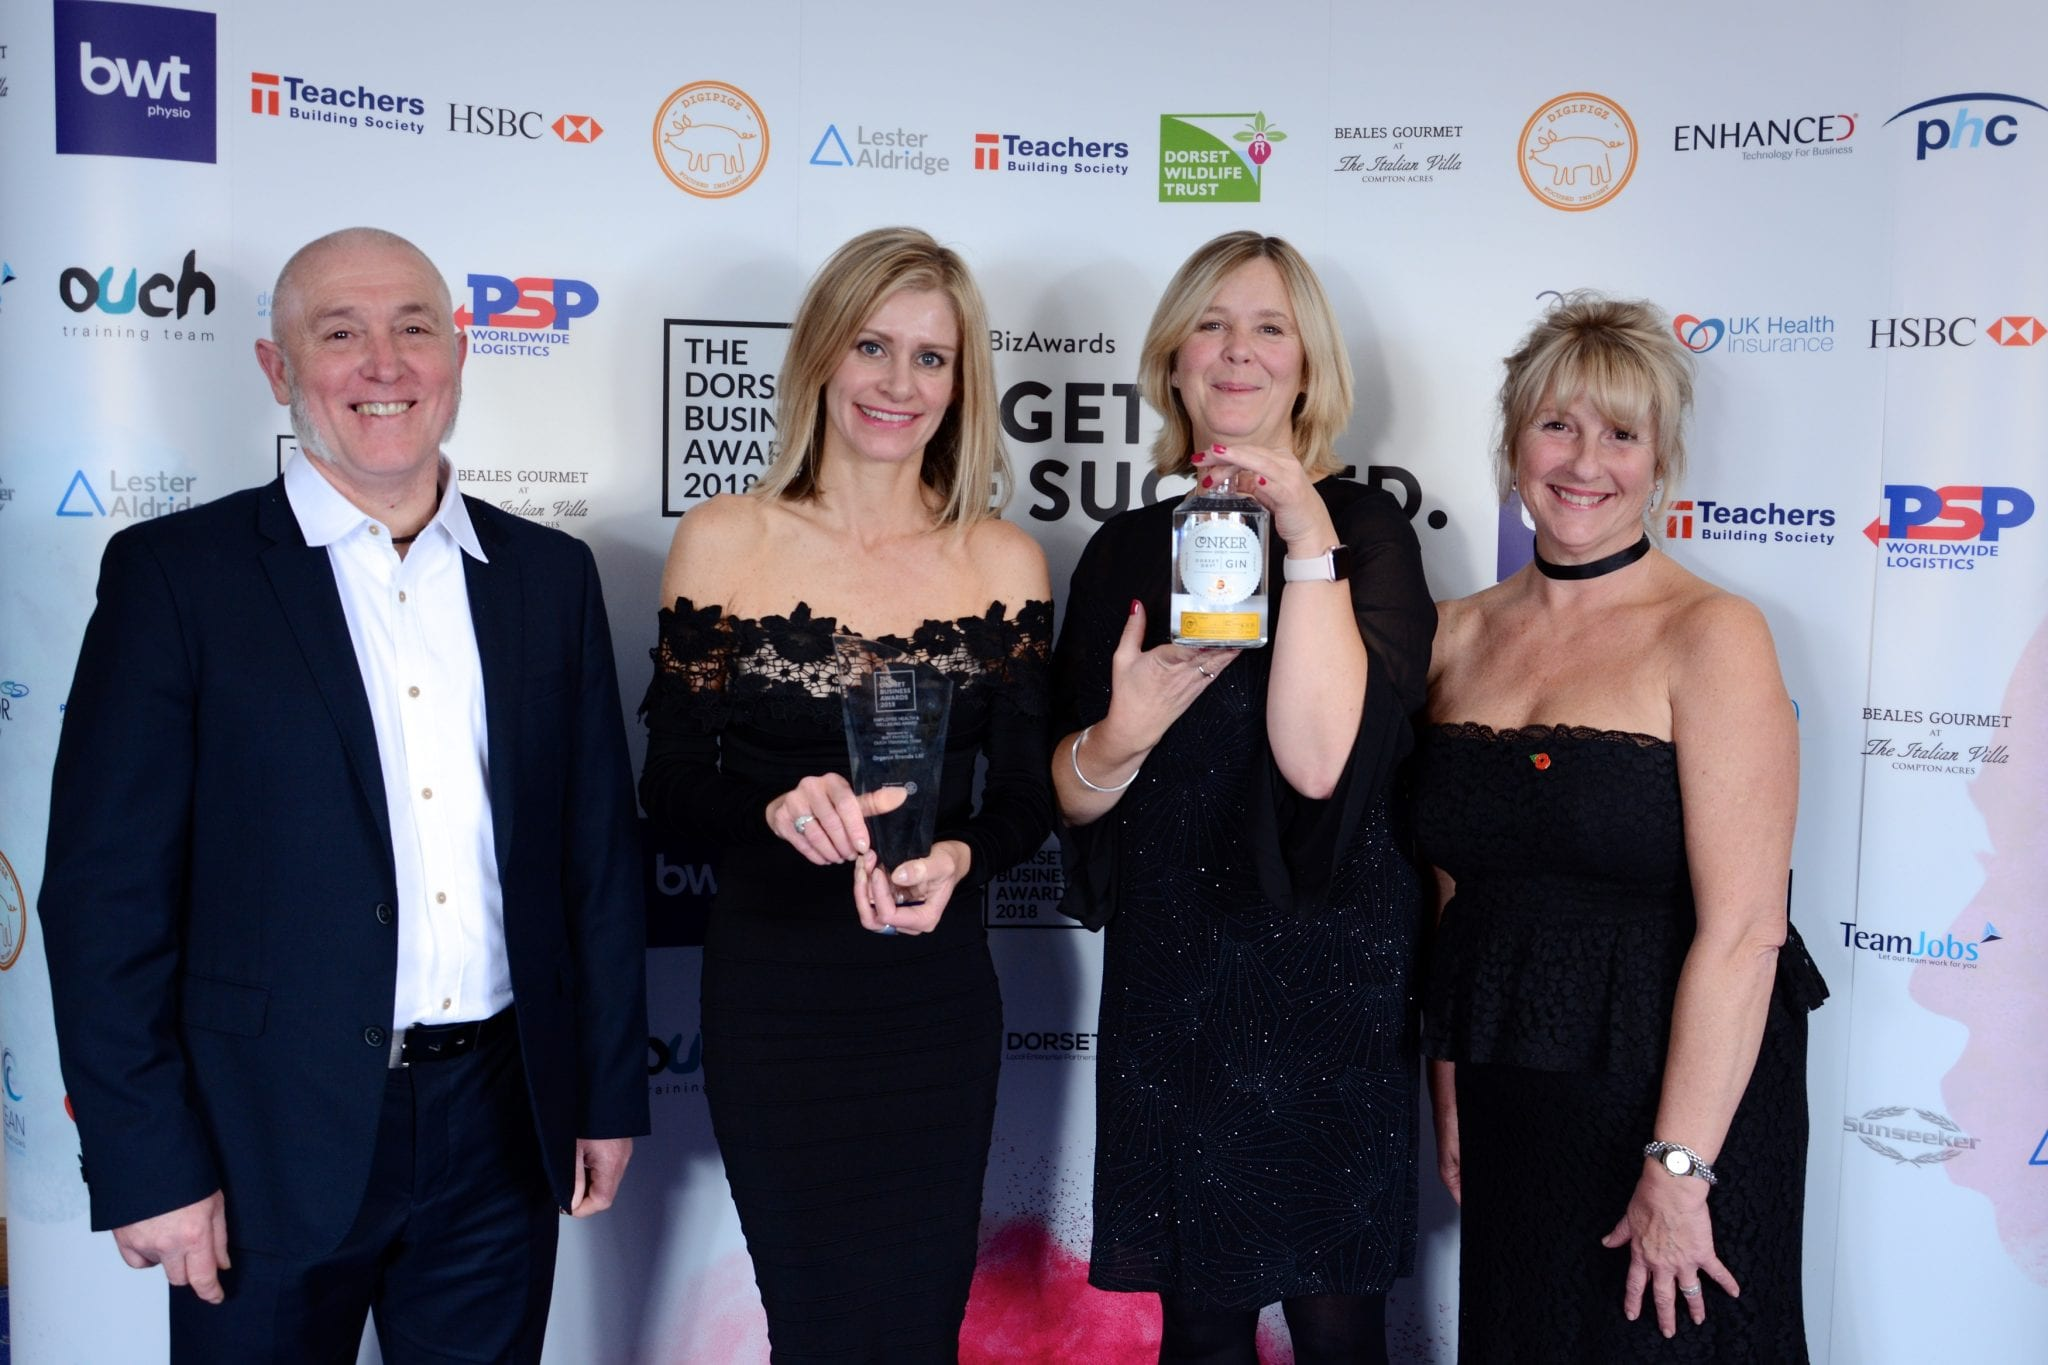 EMPLOYEE HEALTH AND WELLBEING AWARD WINNER